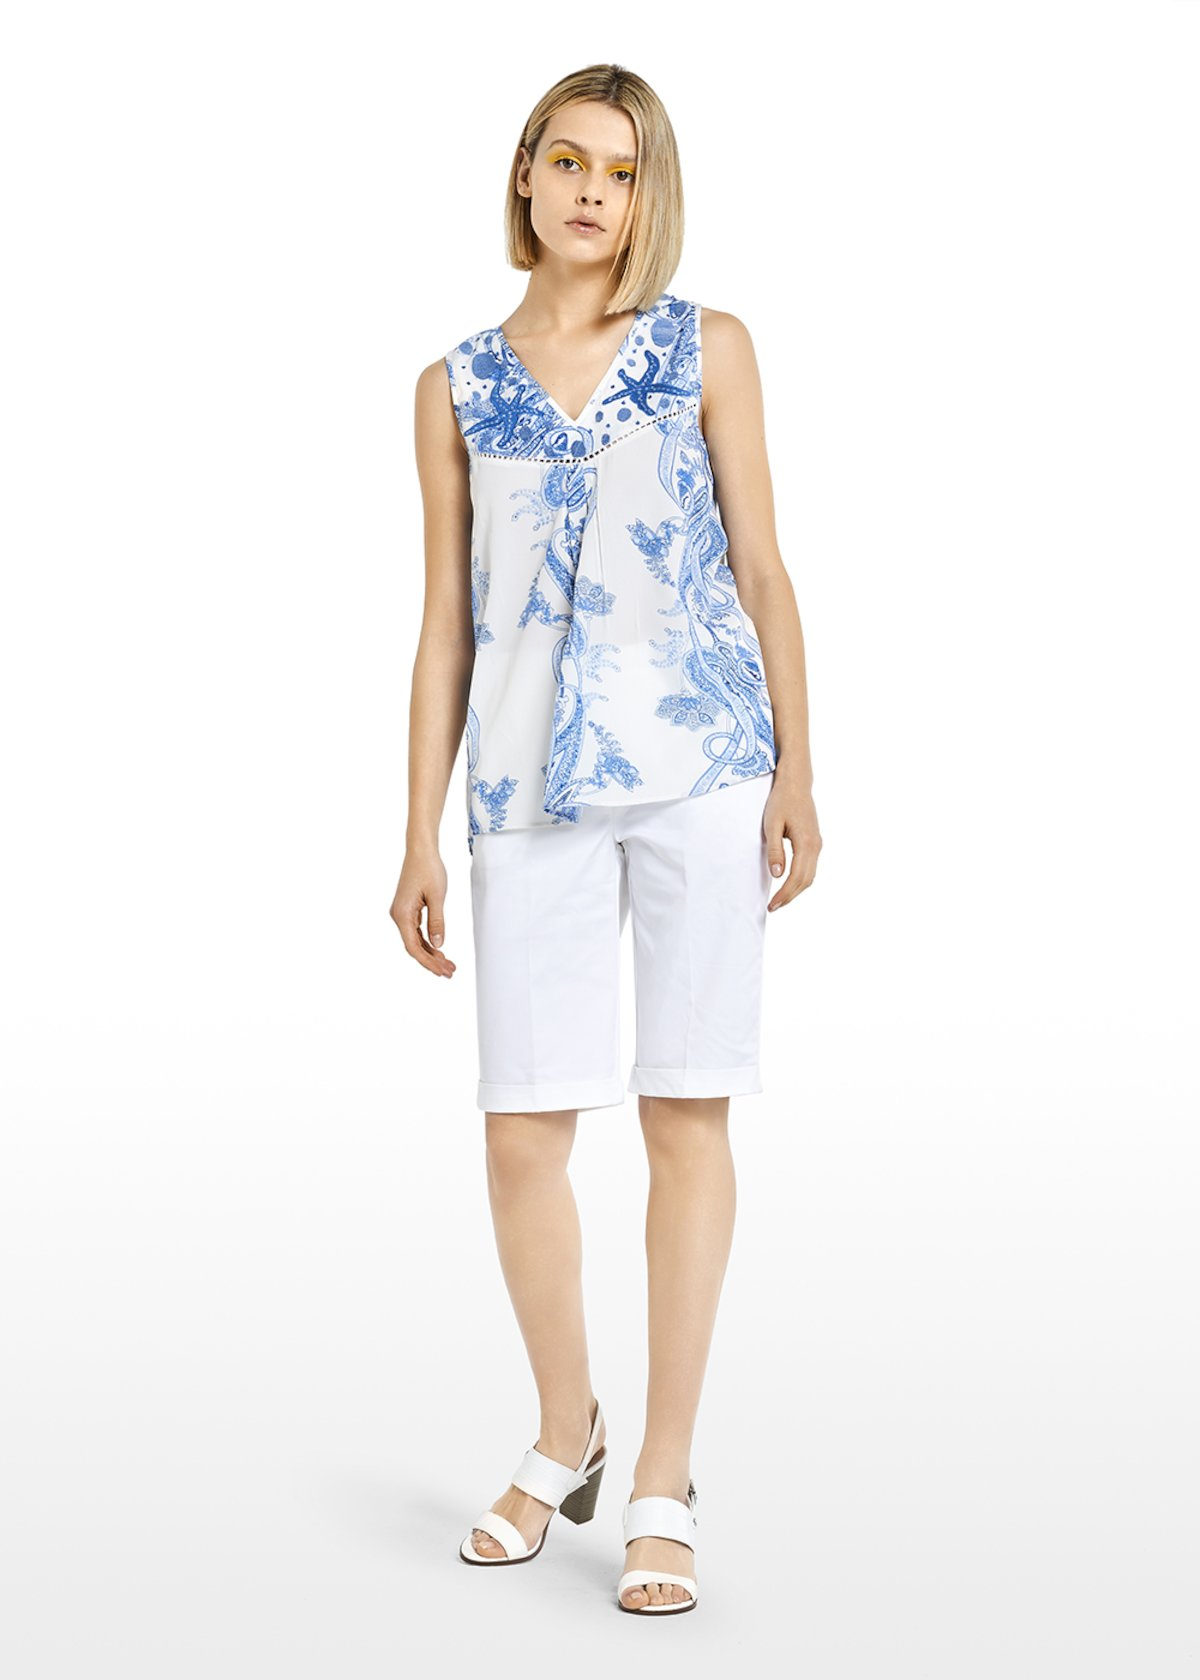 Trevor Top with chains and embroidery - White\ Mineral\ Fantasia - Woman - Category image